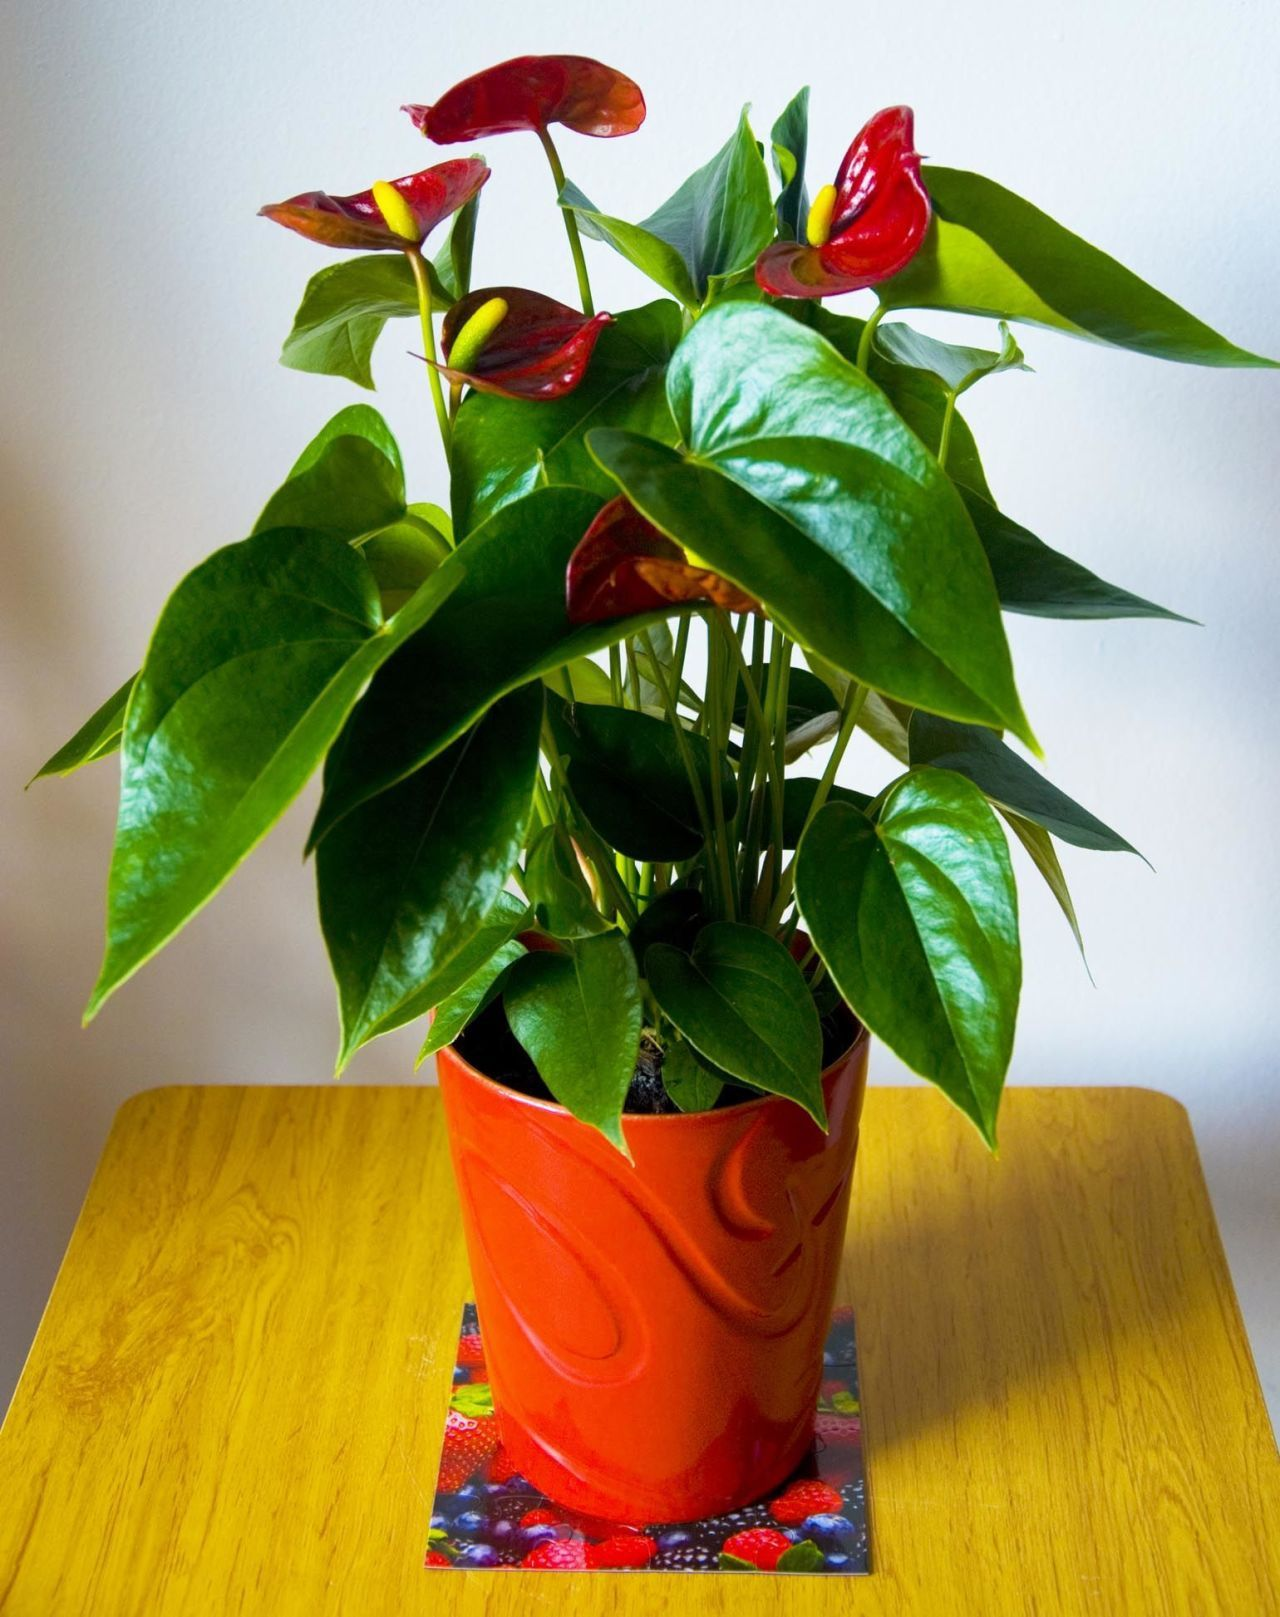 10 Definitive Reasons You Need More Houseplants In Your Life Anthurium Plant Plants Growing Plants Indoors